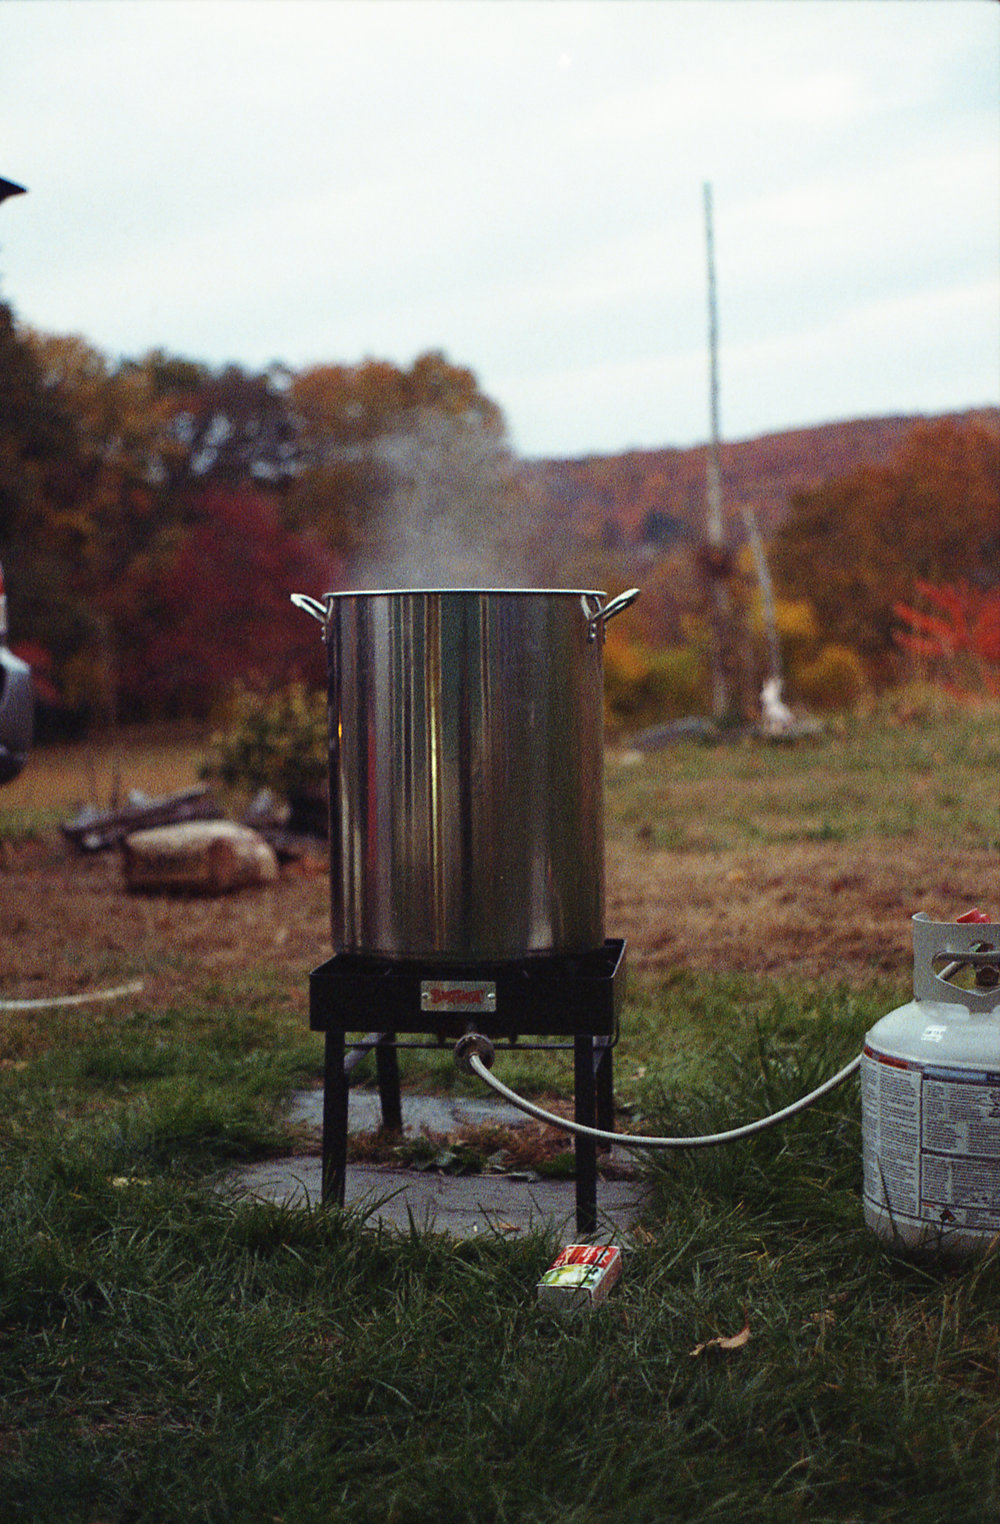 The mash tub set up for Bogdan's home brewery, which he operates while attending UConn.(Courtesy/Steve Bogdan)